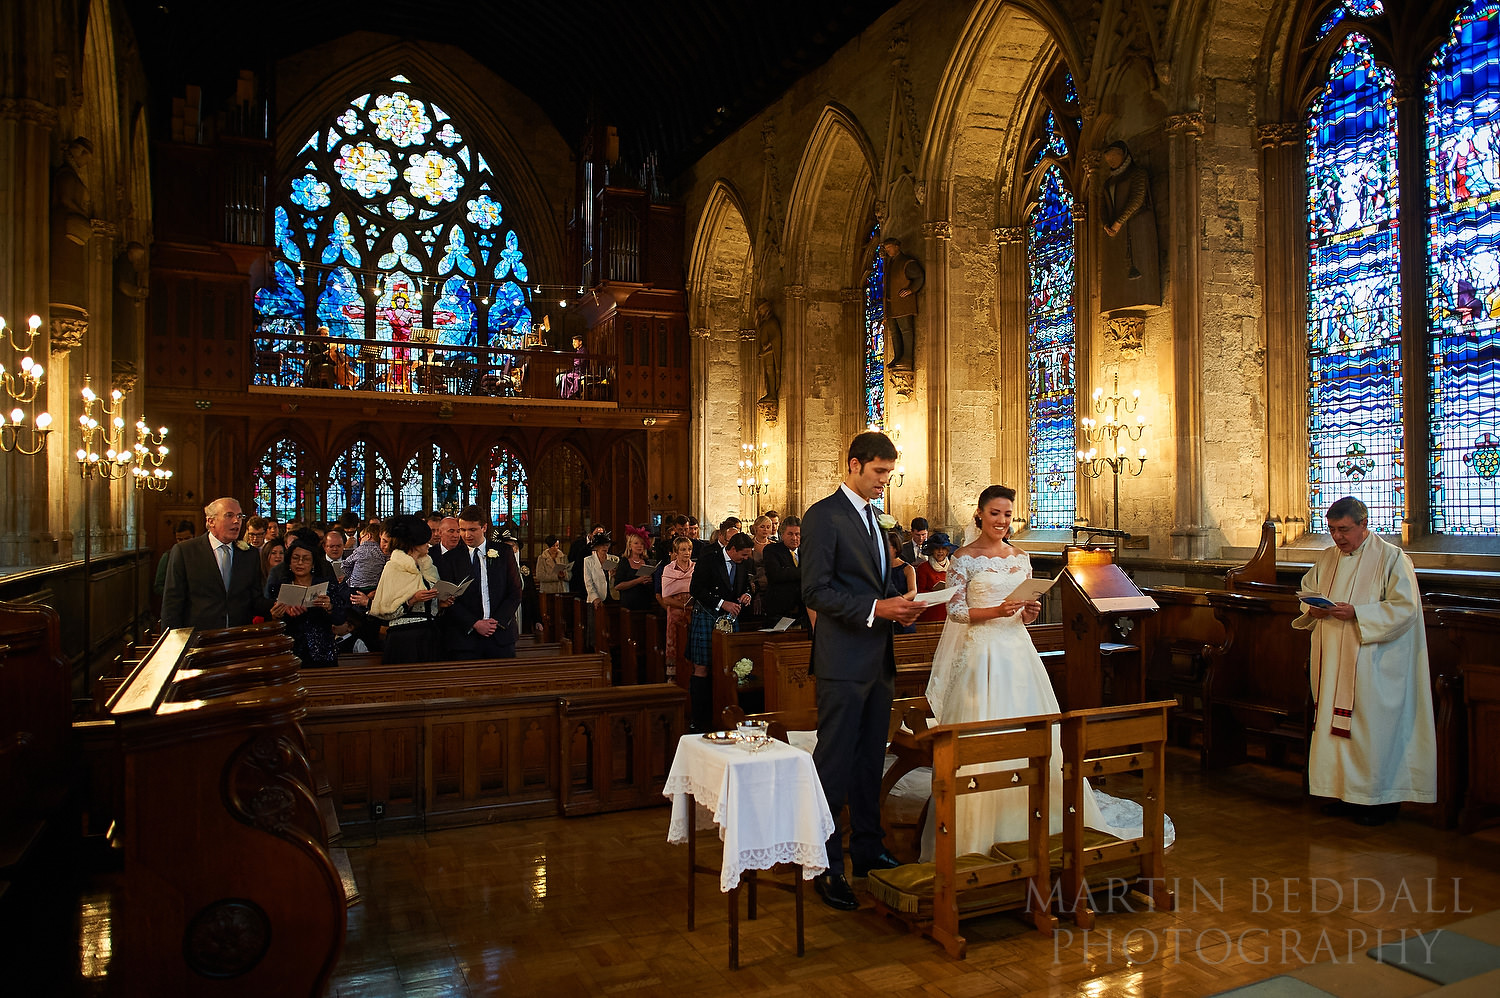 Wedding at St Etheldreda's church